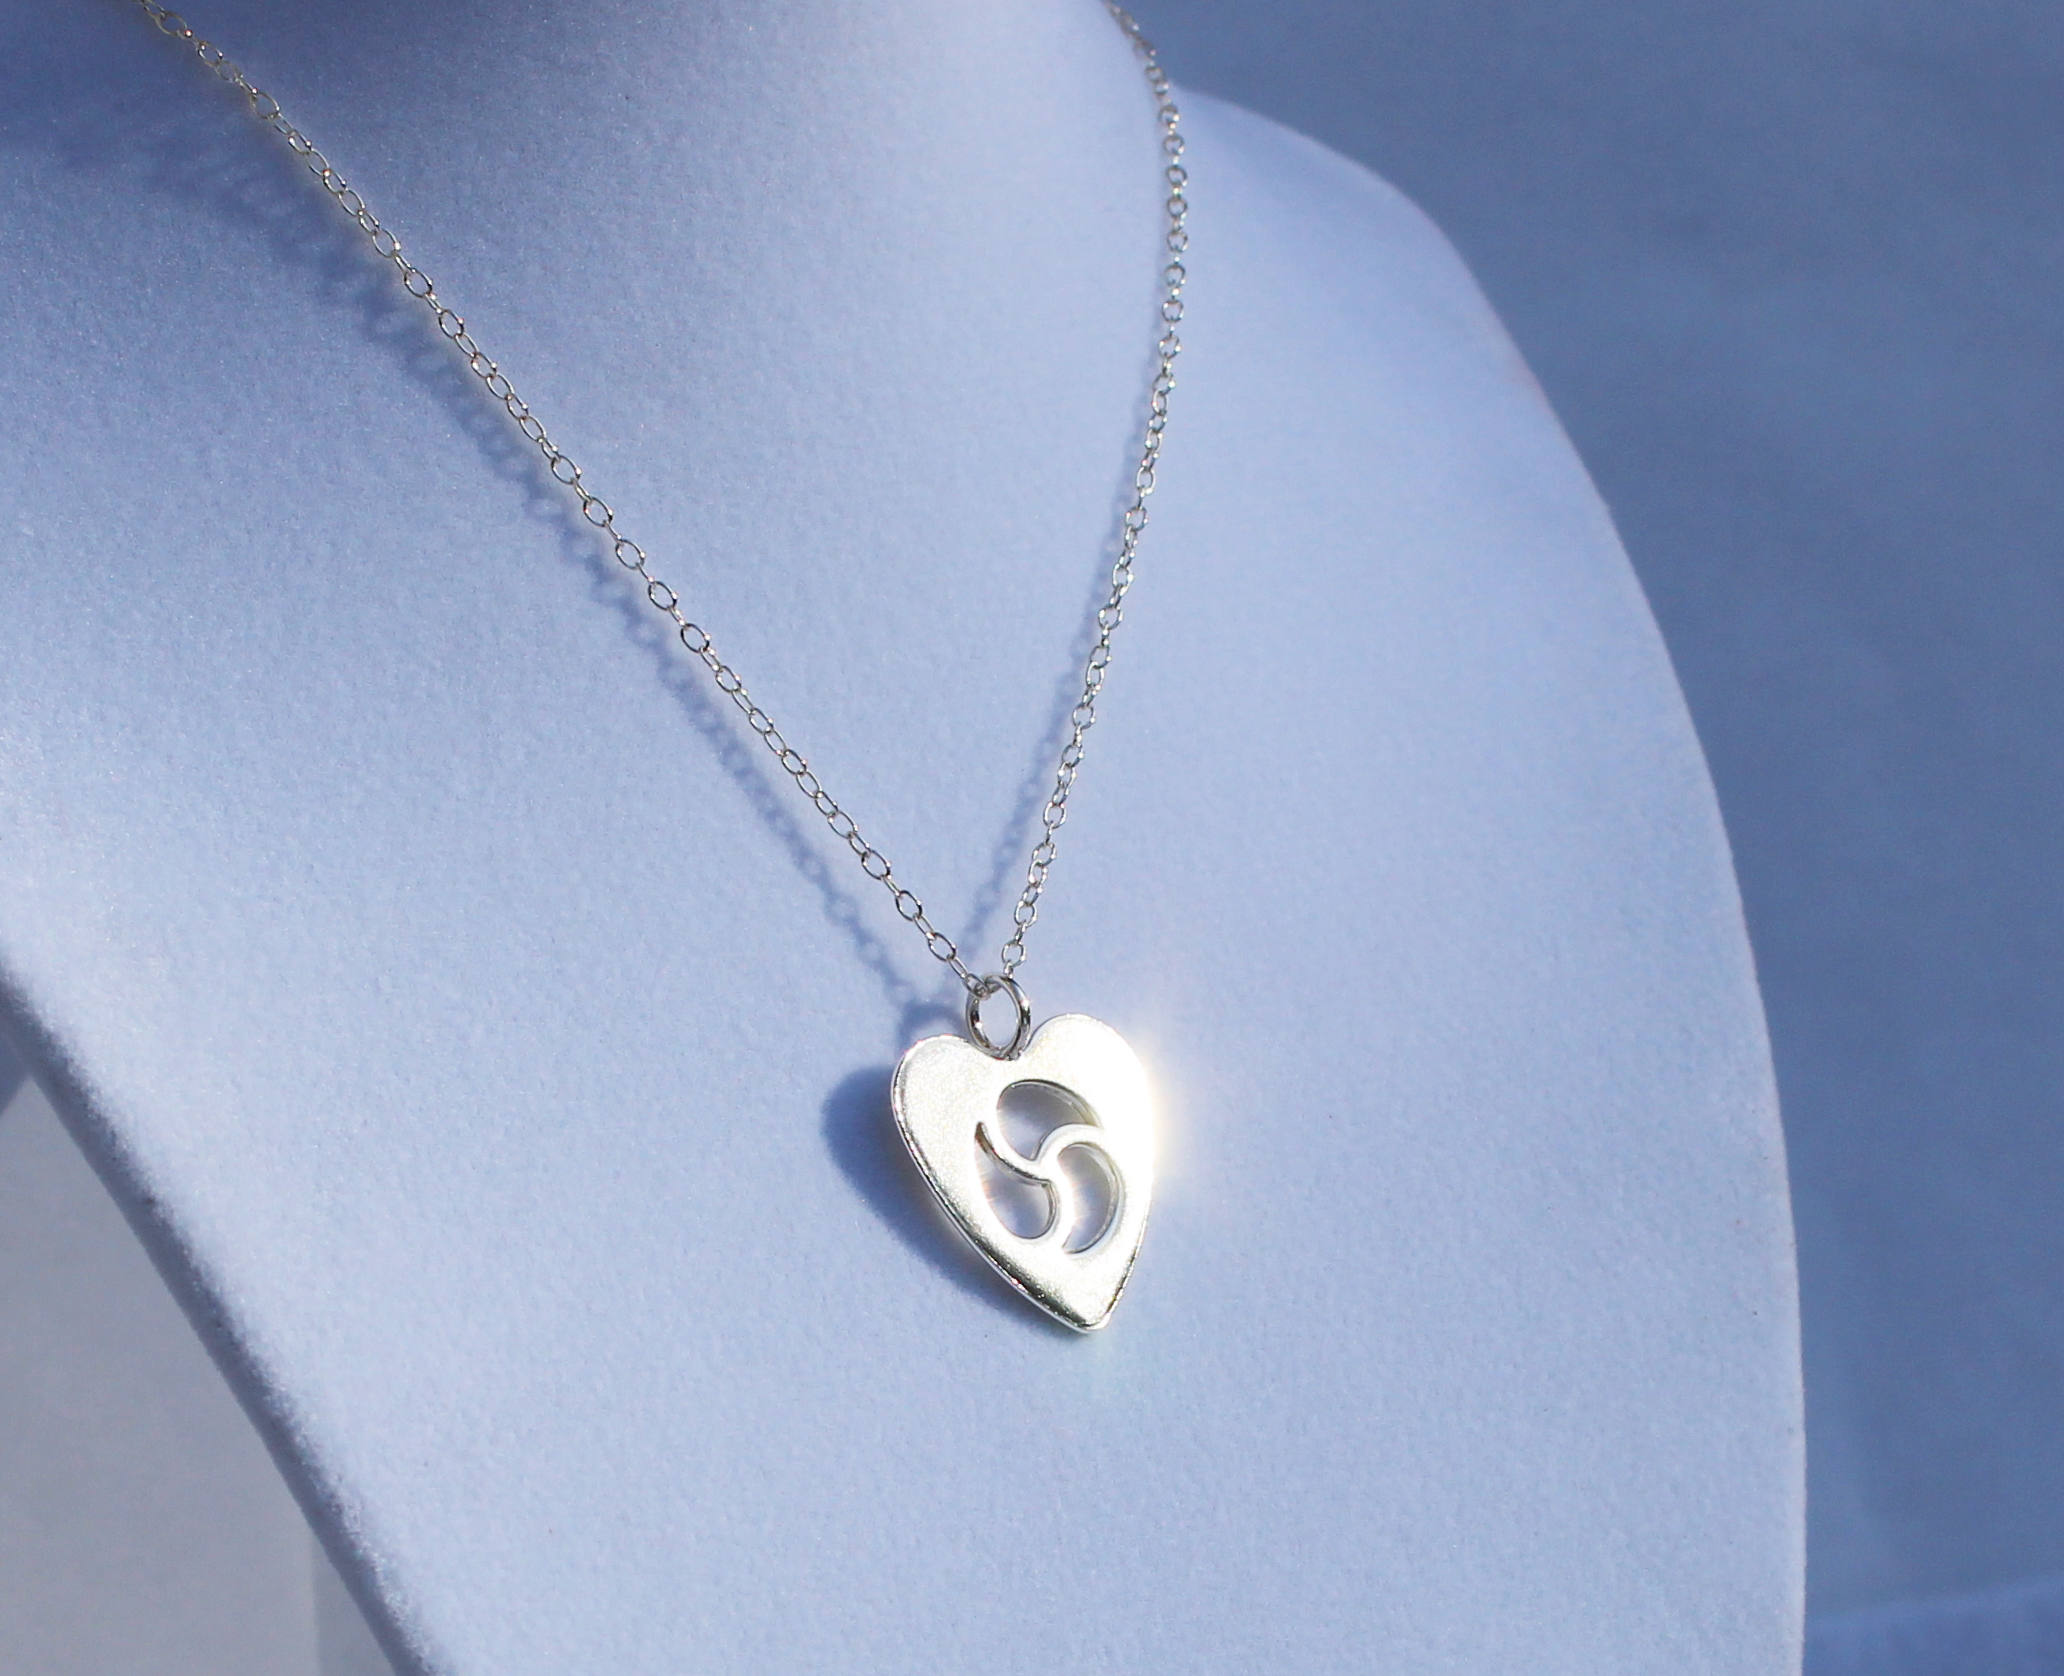 Bdsm jewelry submissive little necklace heart sterling description bdsm jewelry submissive little necklace biocorpaavc Gallery